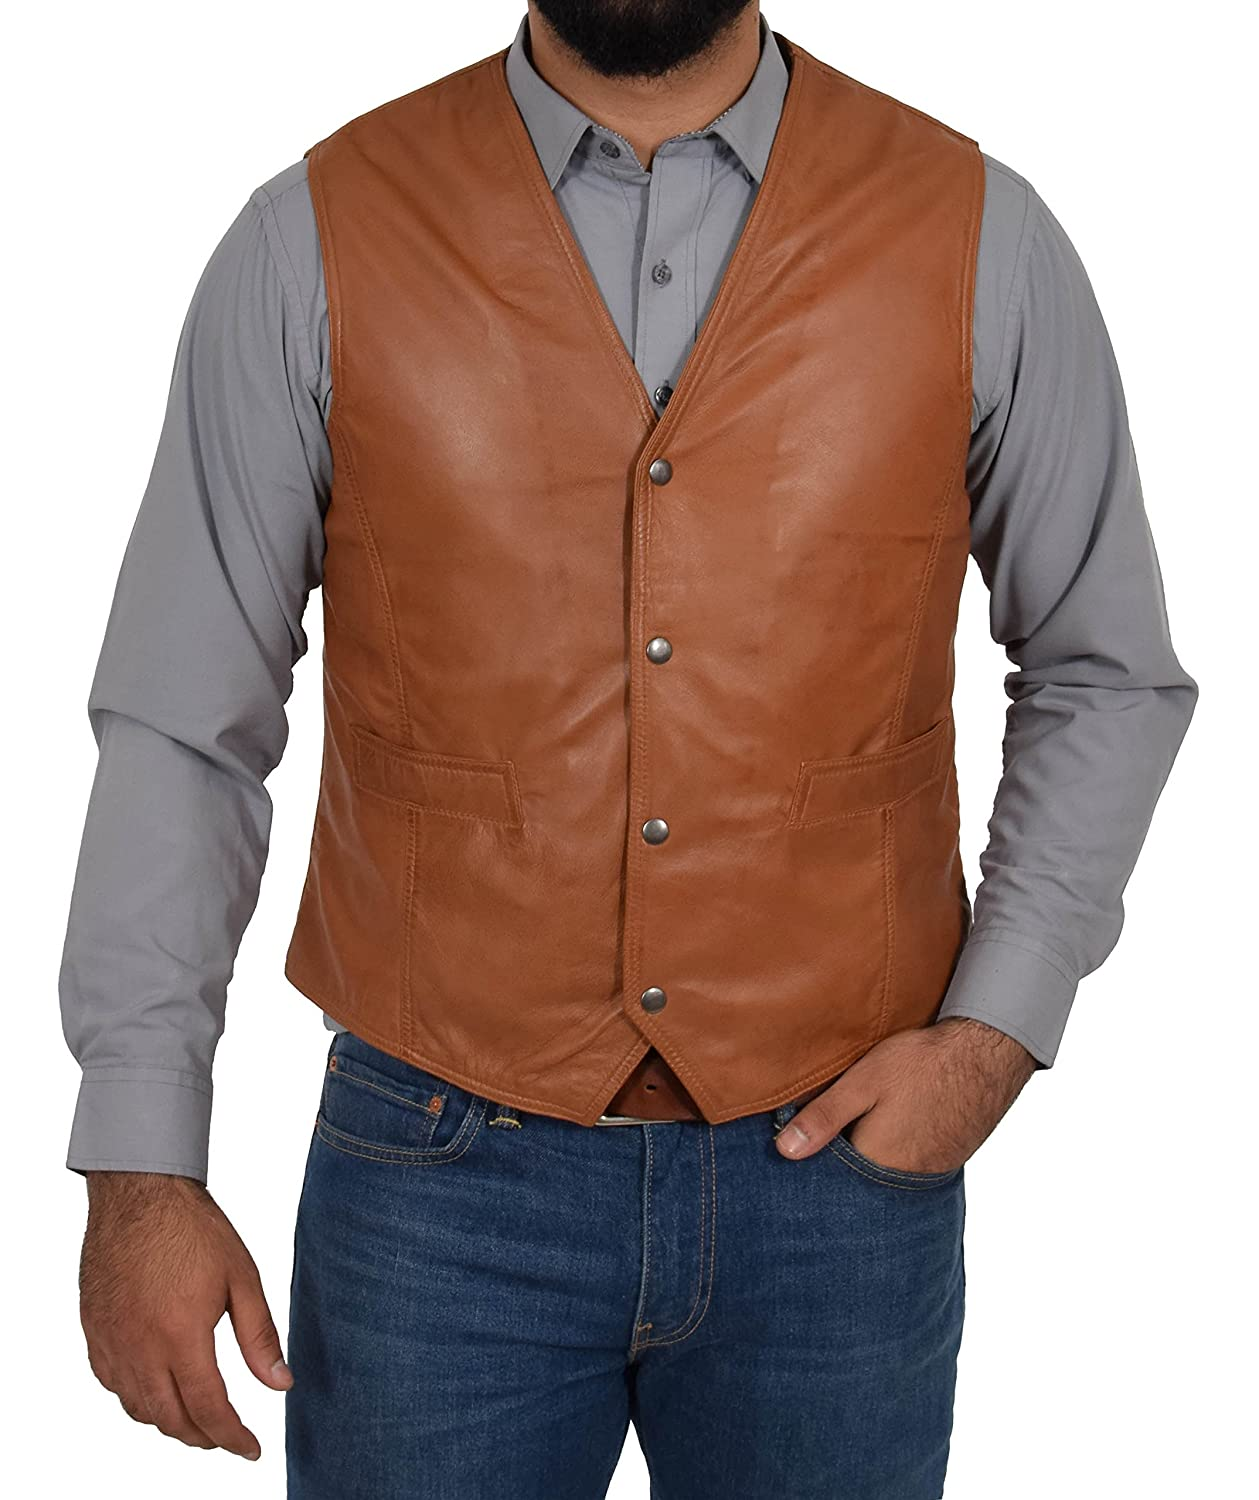 A1 FASHION GOODS Mens Soft Tan Leather Waistcoat Classic Traditional Style Gilet Casual Vest - Bruno Bruno Tan